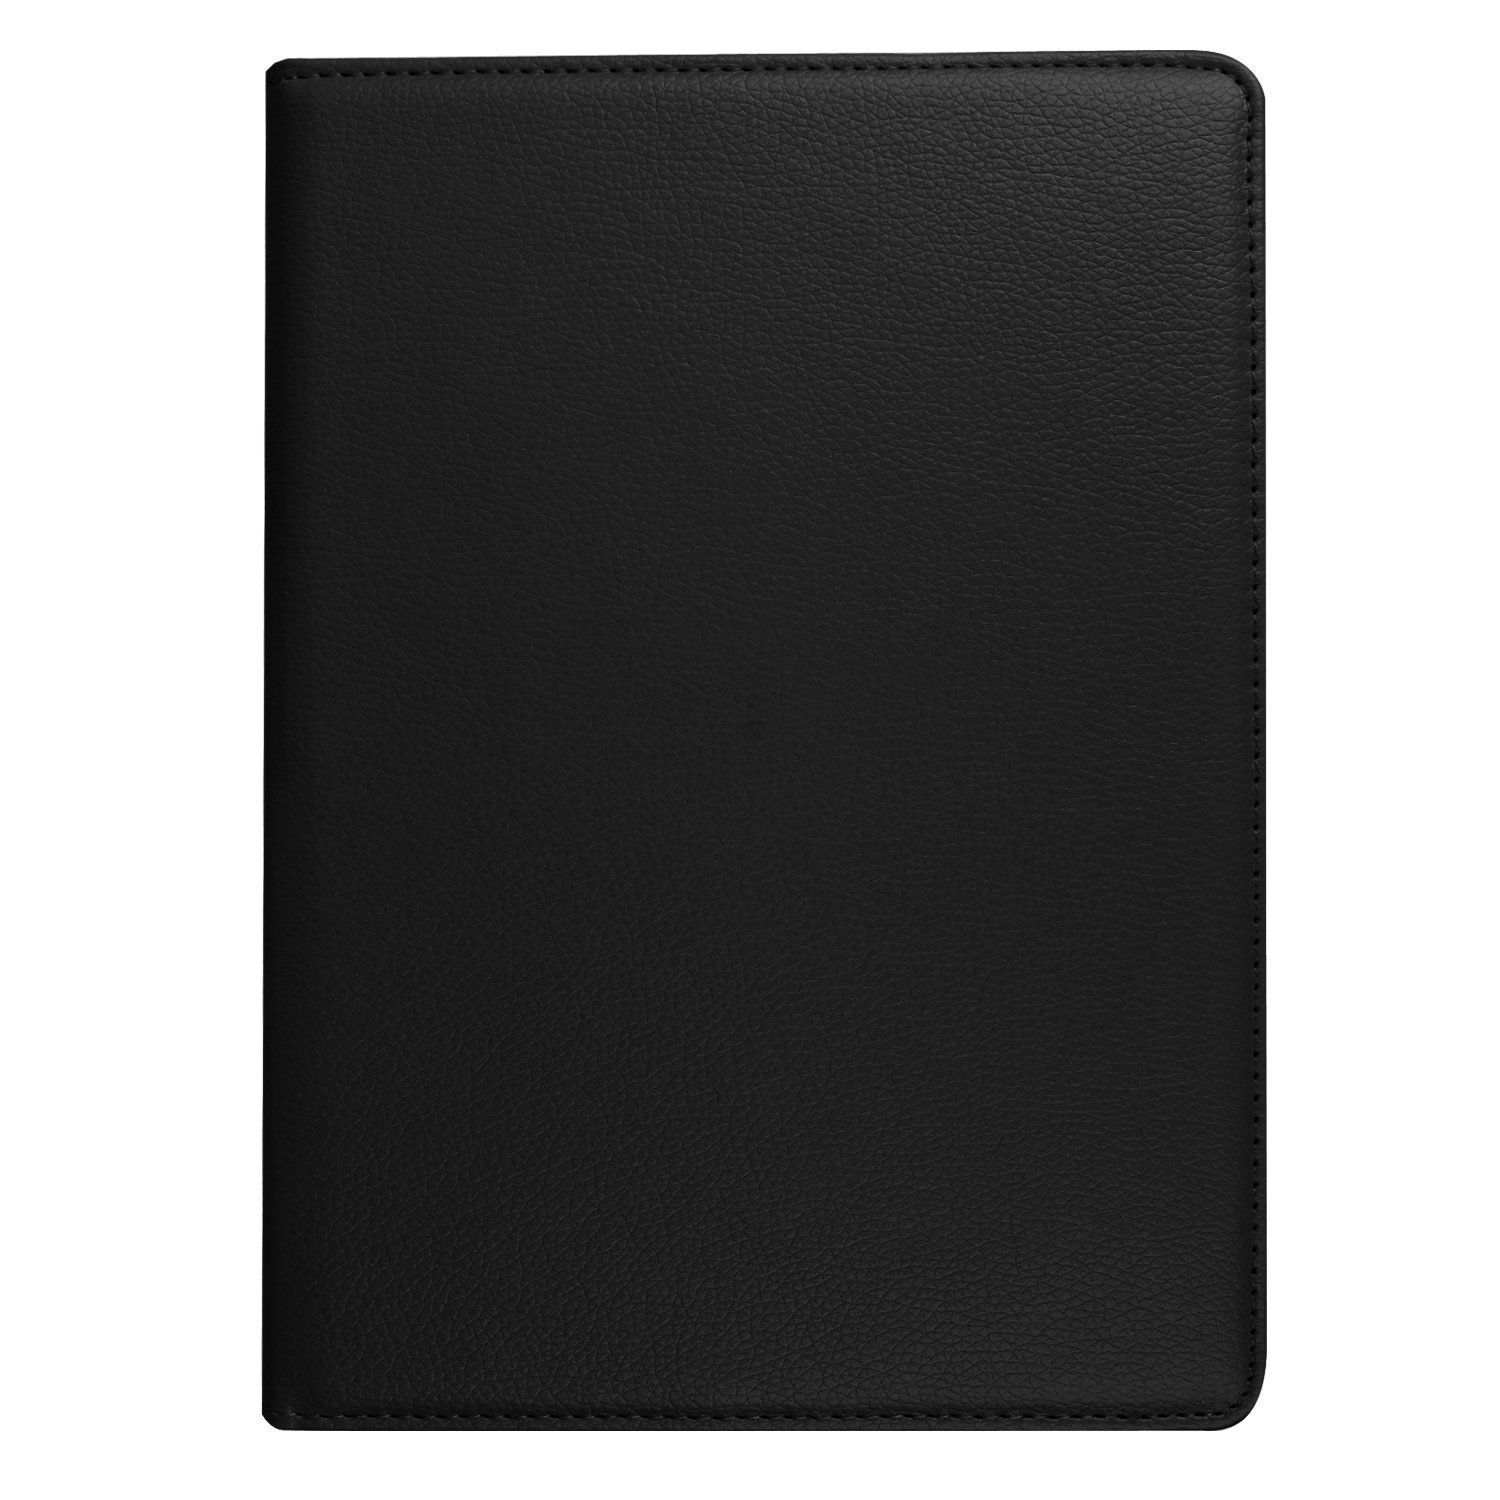 Custodia-per-Apple-iPad-Pro-2017-iPad-Air-3-10-5-Smart-Cover-Case-Custodia-Protettiva miniatura 11